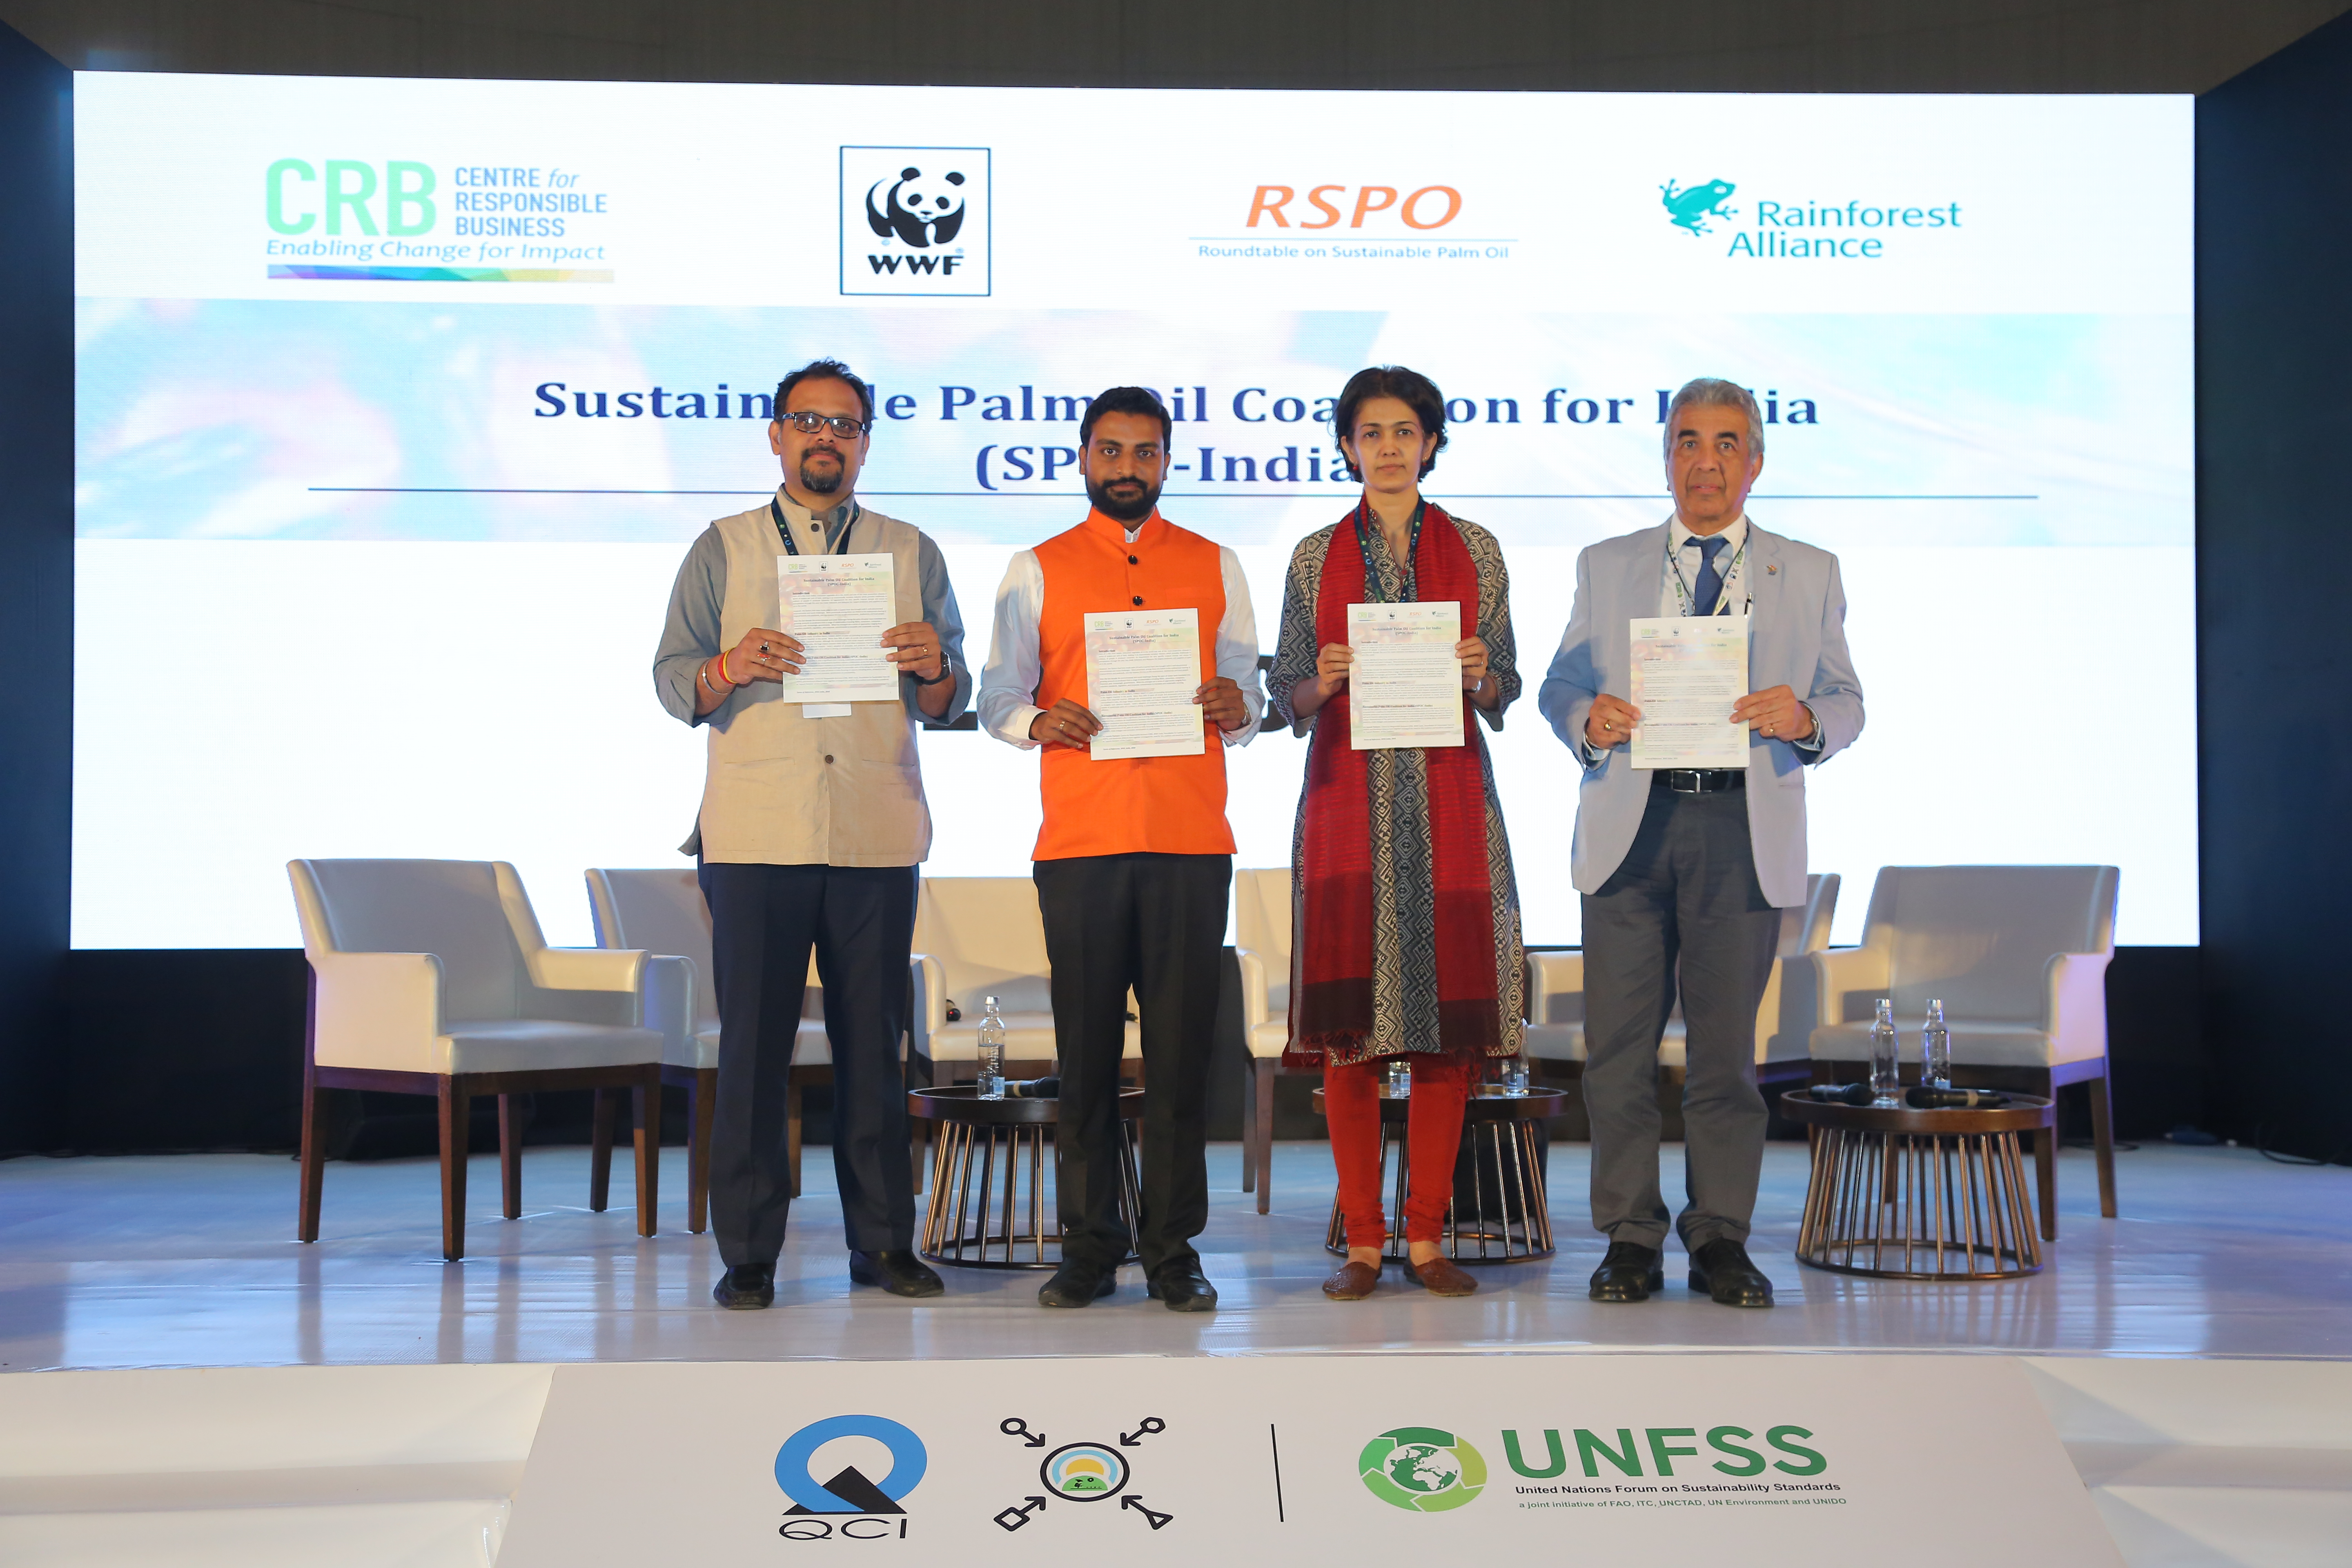 Sustainable Palm Oil Coalition for India launched to drive